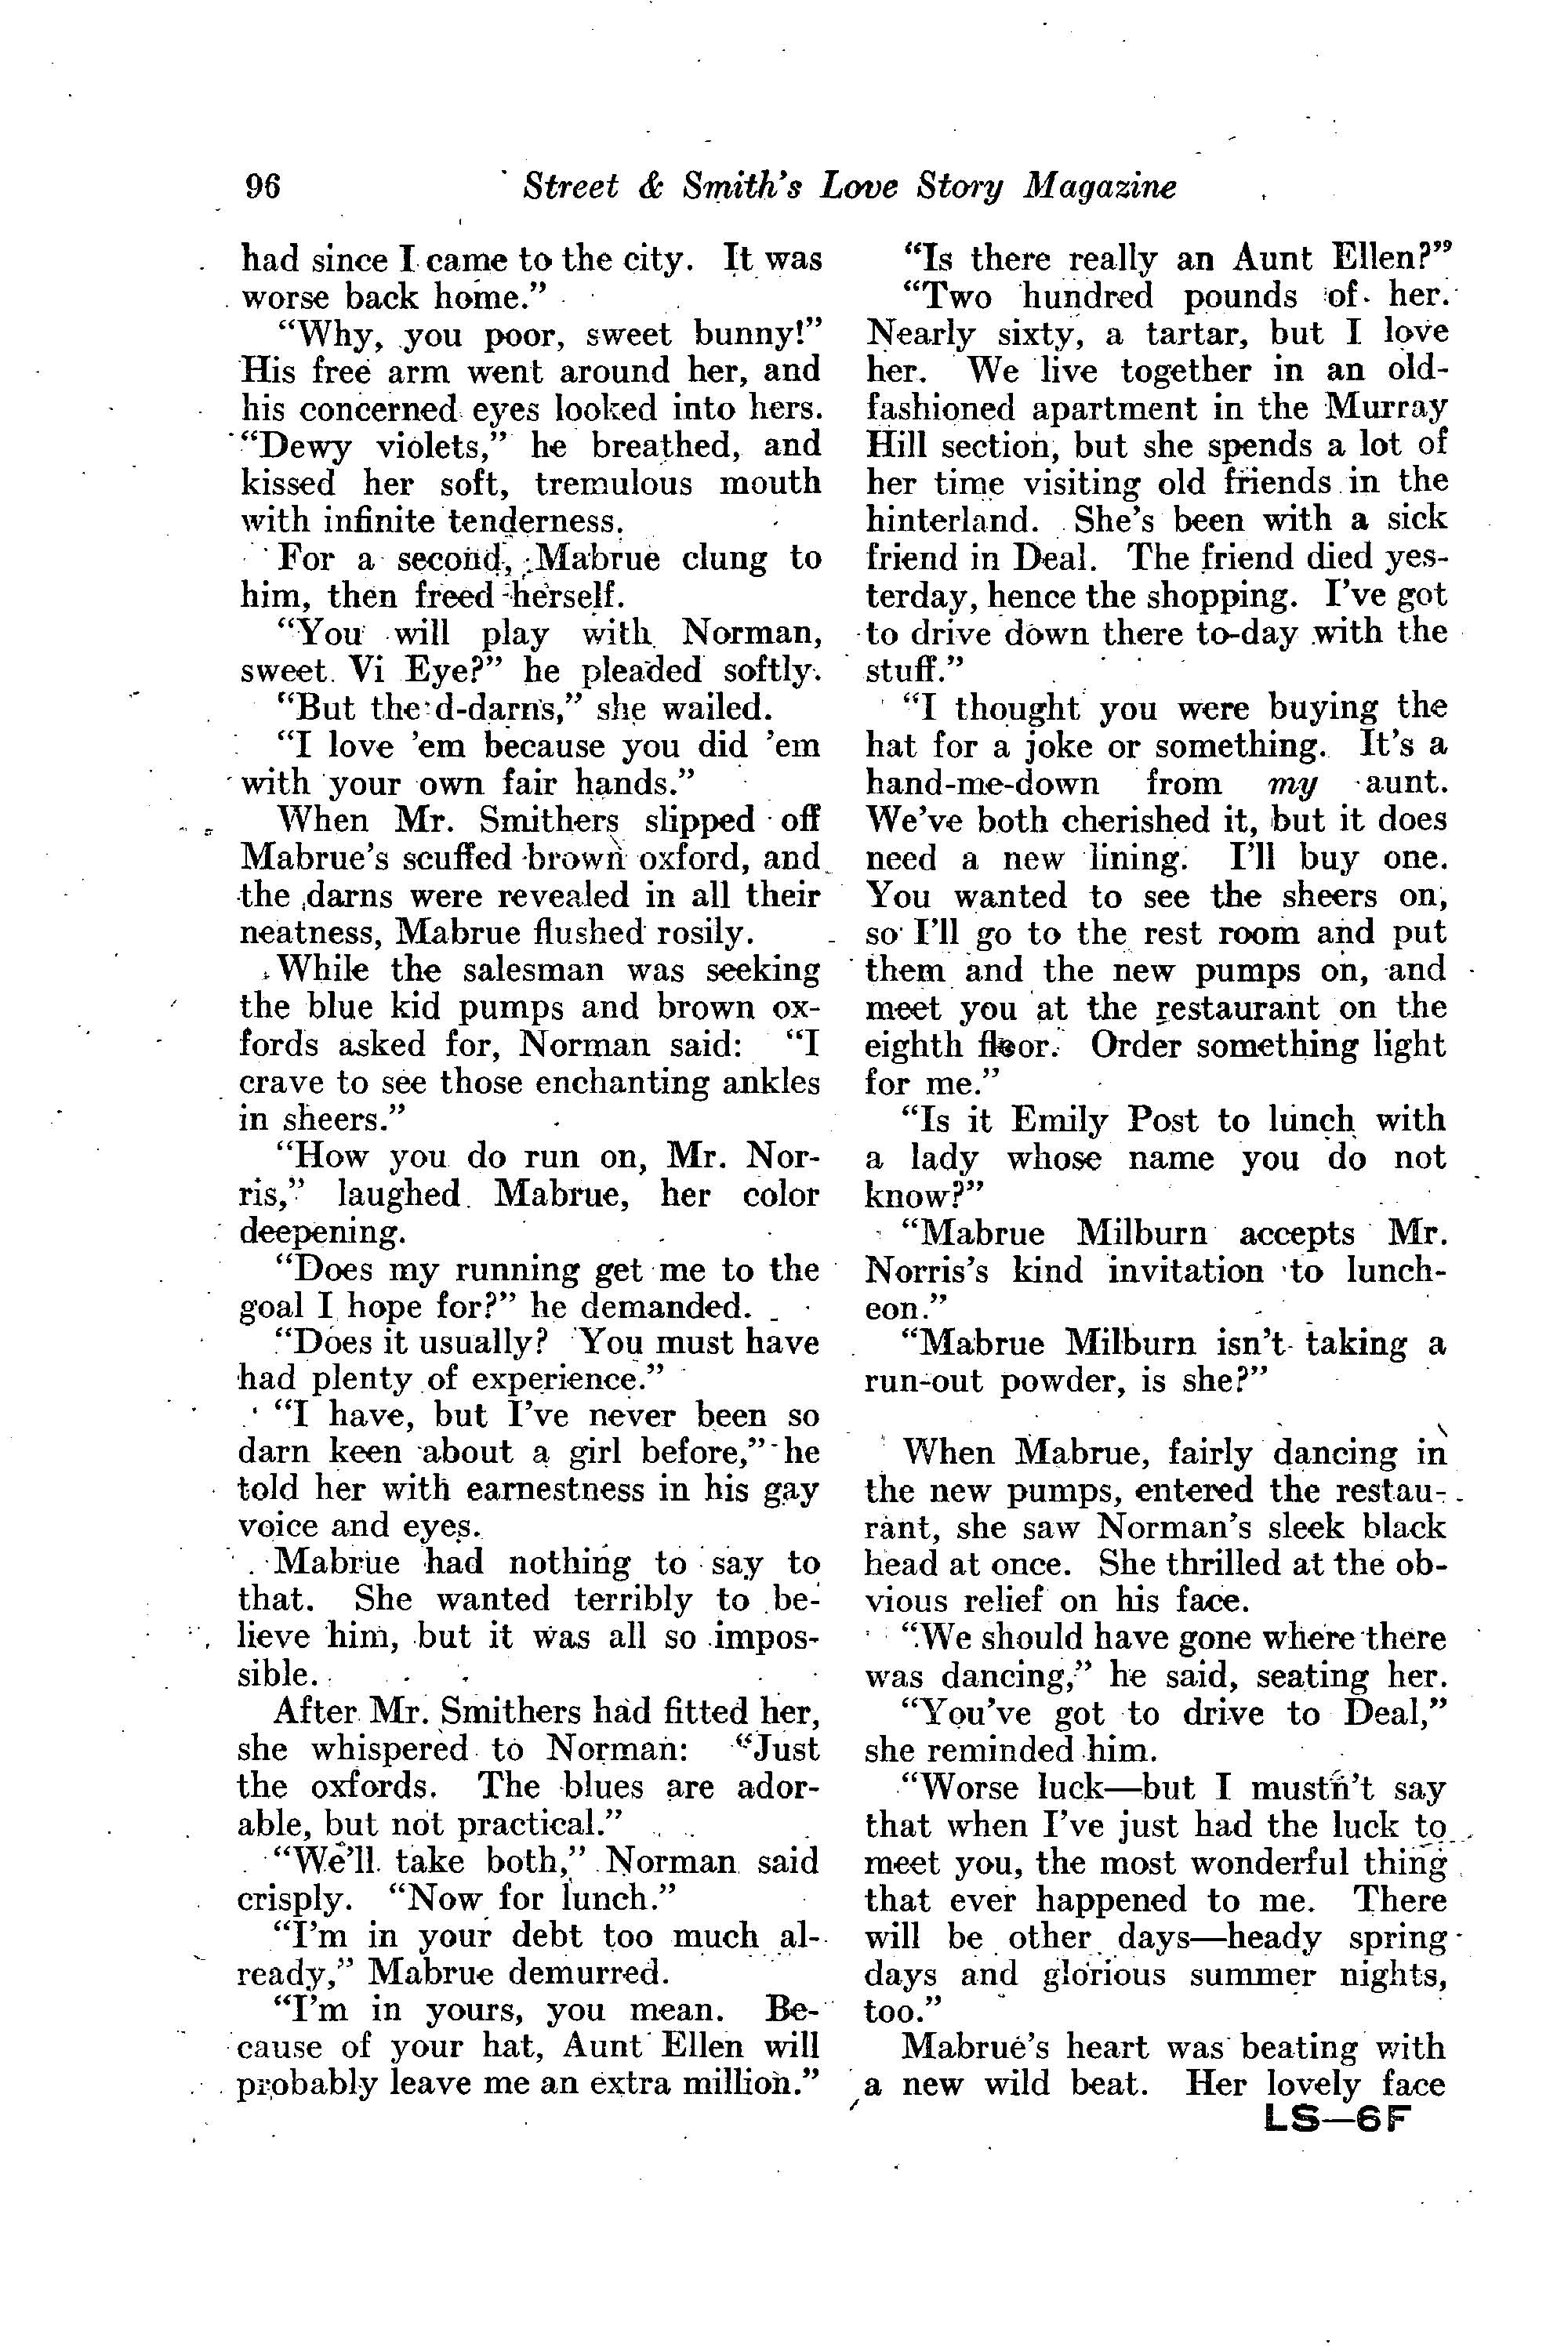 Love Story Magazine Vol XIV No 6 March 30 1935 ed by Daisy – Testable Questions Worksheet